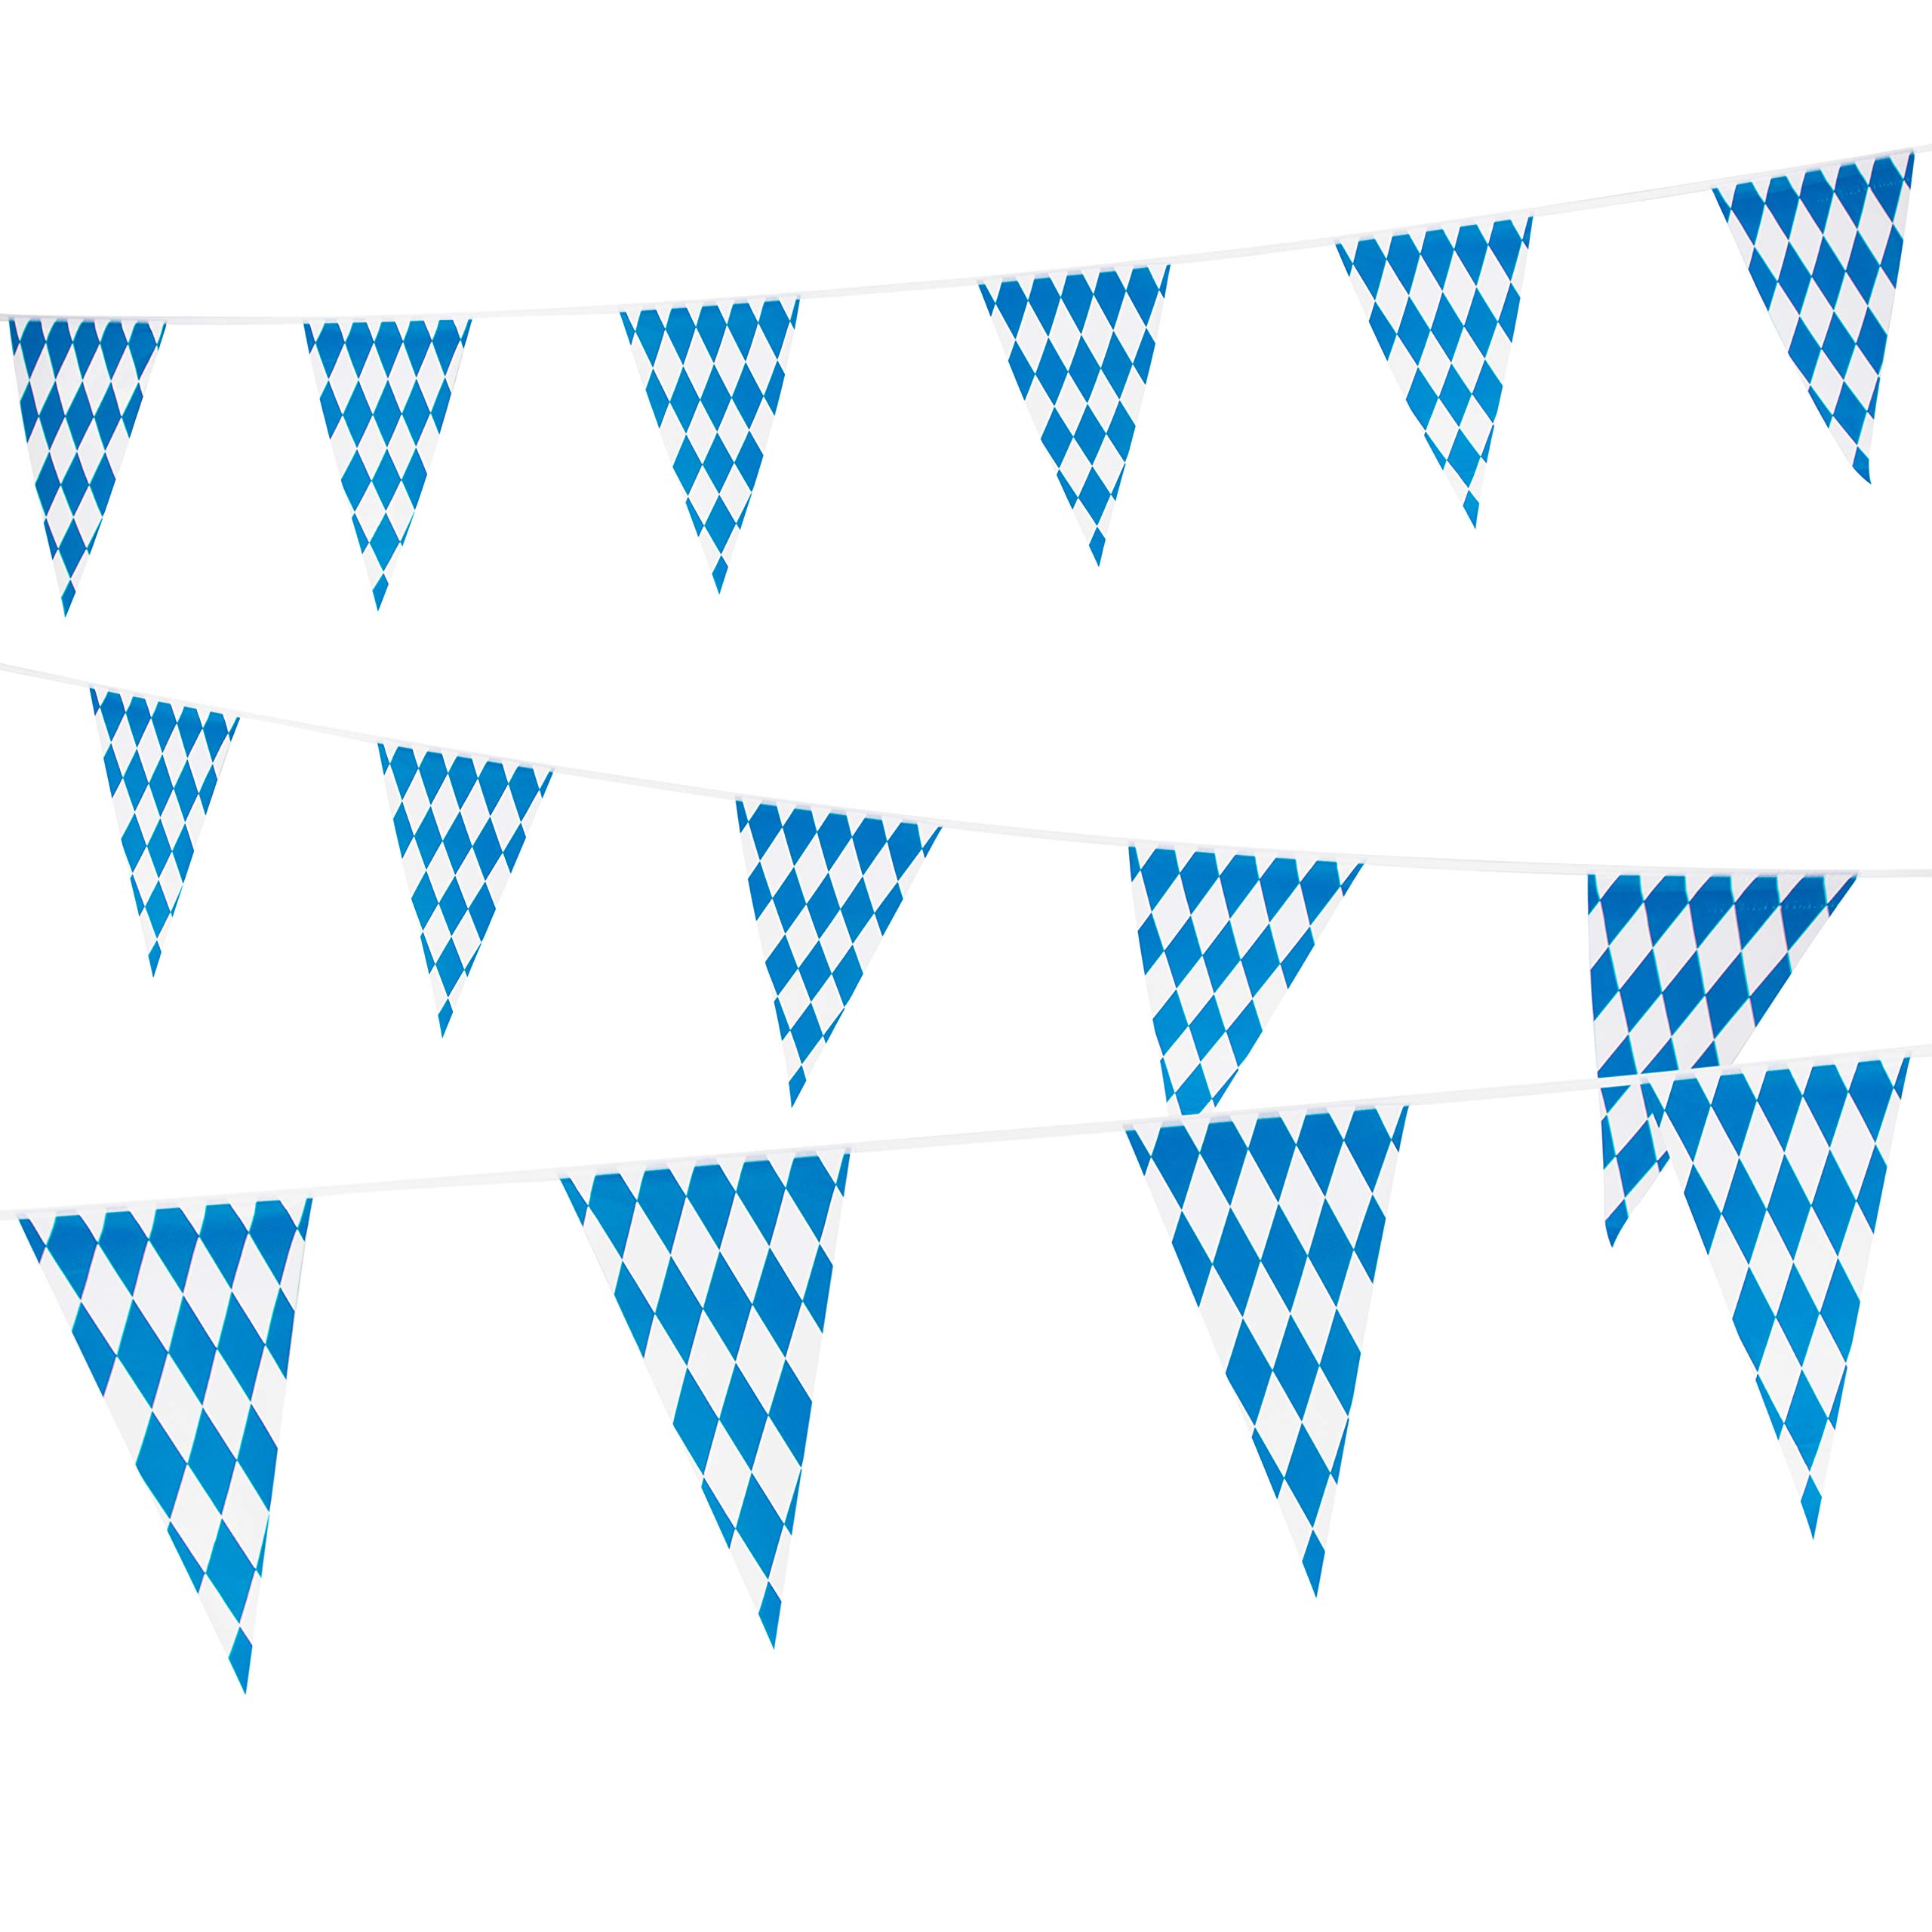 118 Feet Oktoberfest Bavarian Pennant Banner - Hanging Check Flag German Themed Party Decoration by 90shine